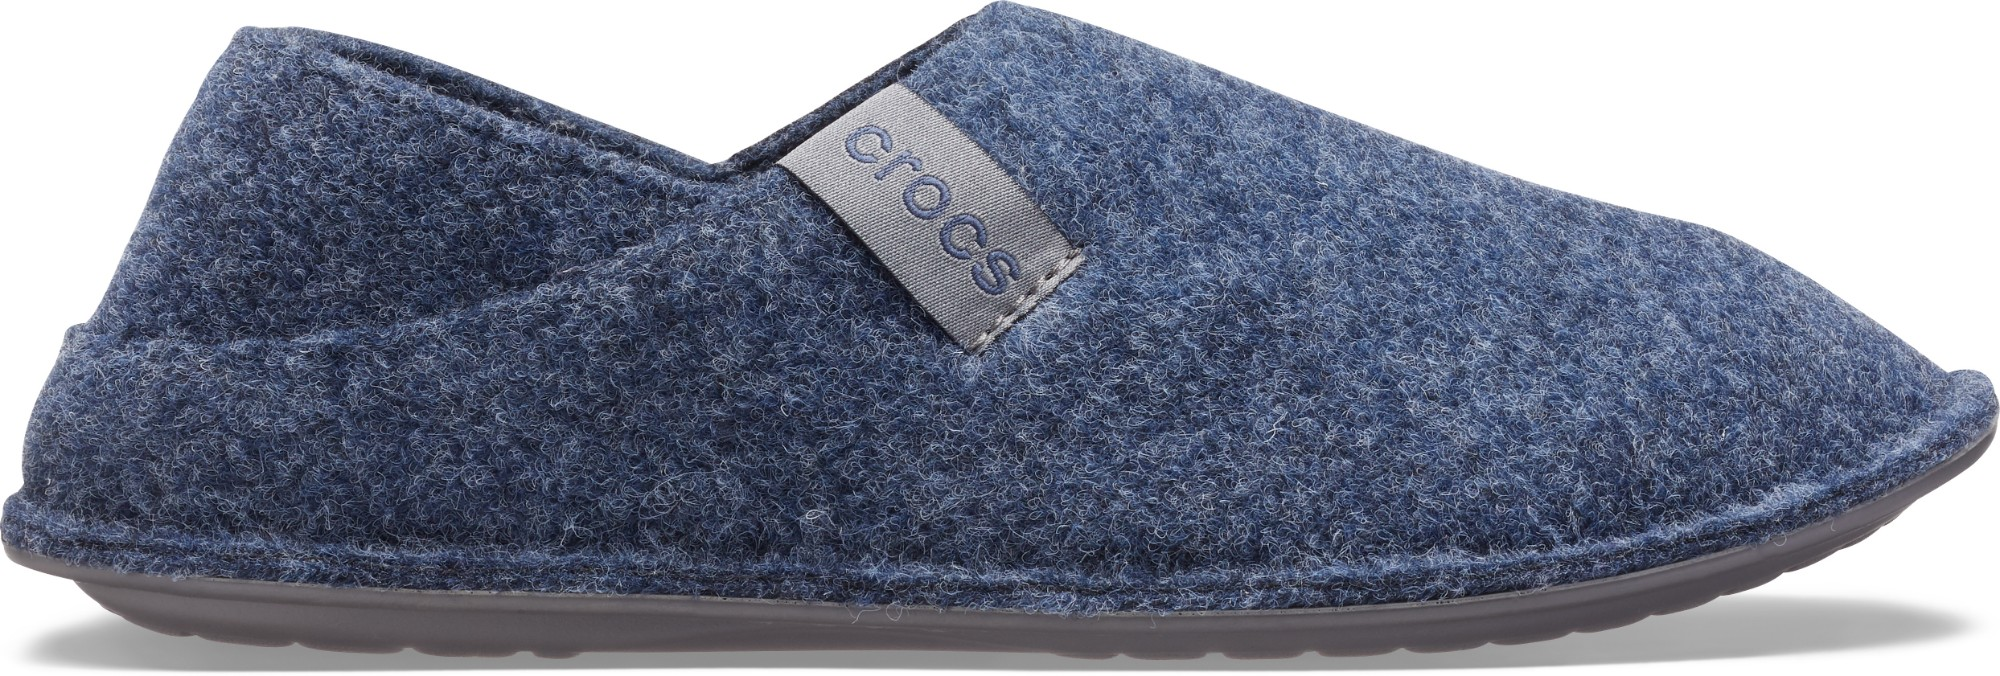 Crocs™ Classic Convertible Slipper Navy/Charcoal 41